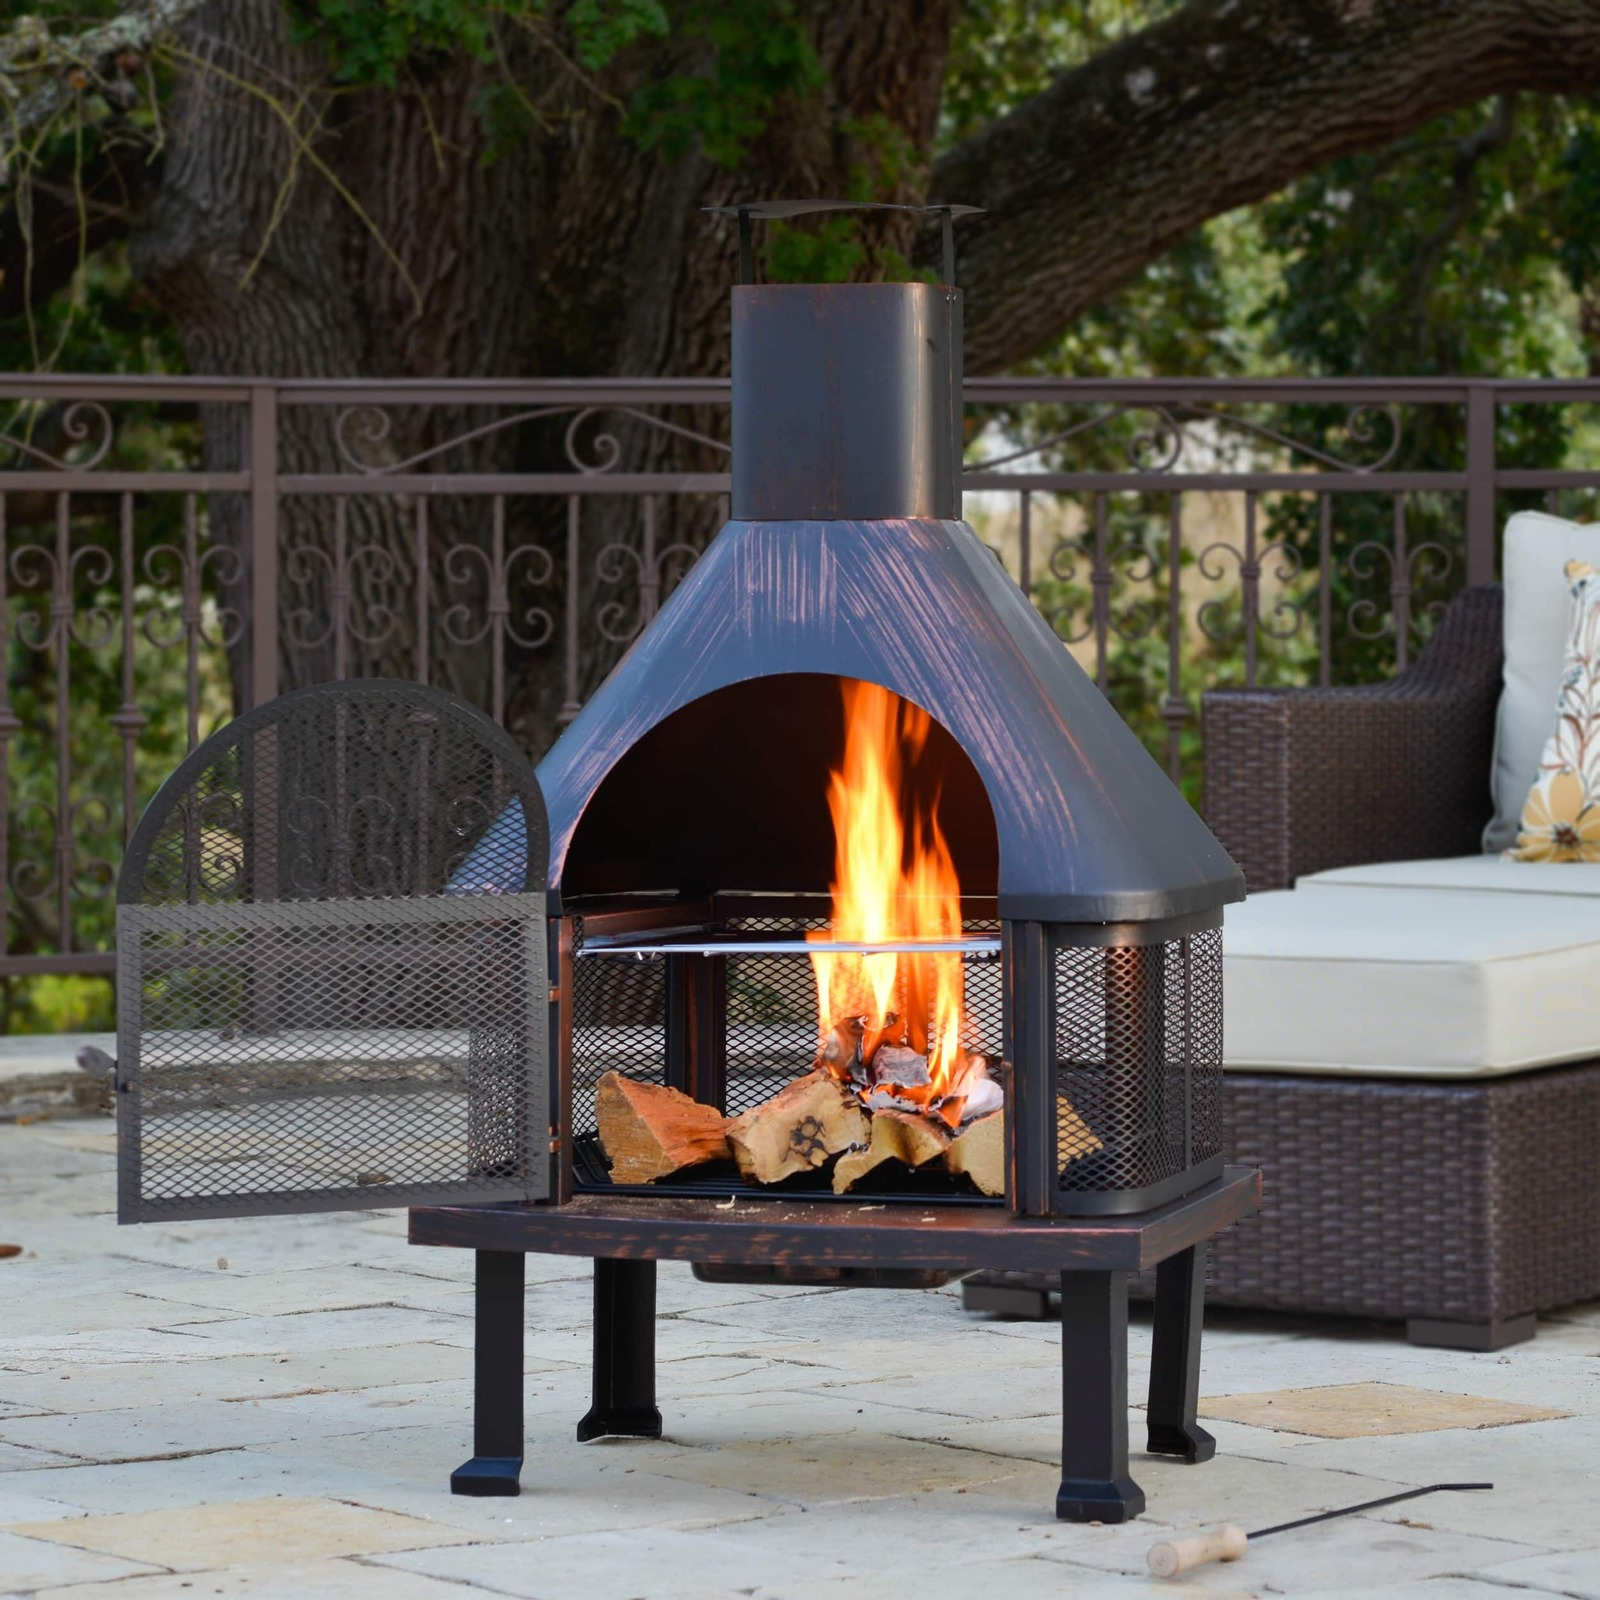 Outdoor Fire Pit Vintage Brushed Bronze Wood Decor Patio ... on Outdoor Fireplace Pit id=64724